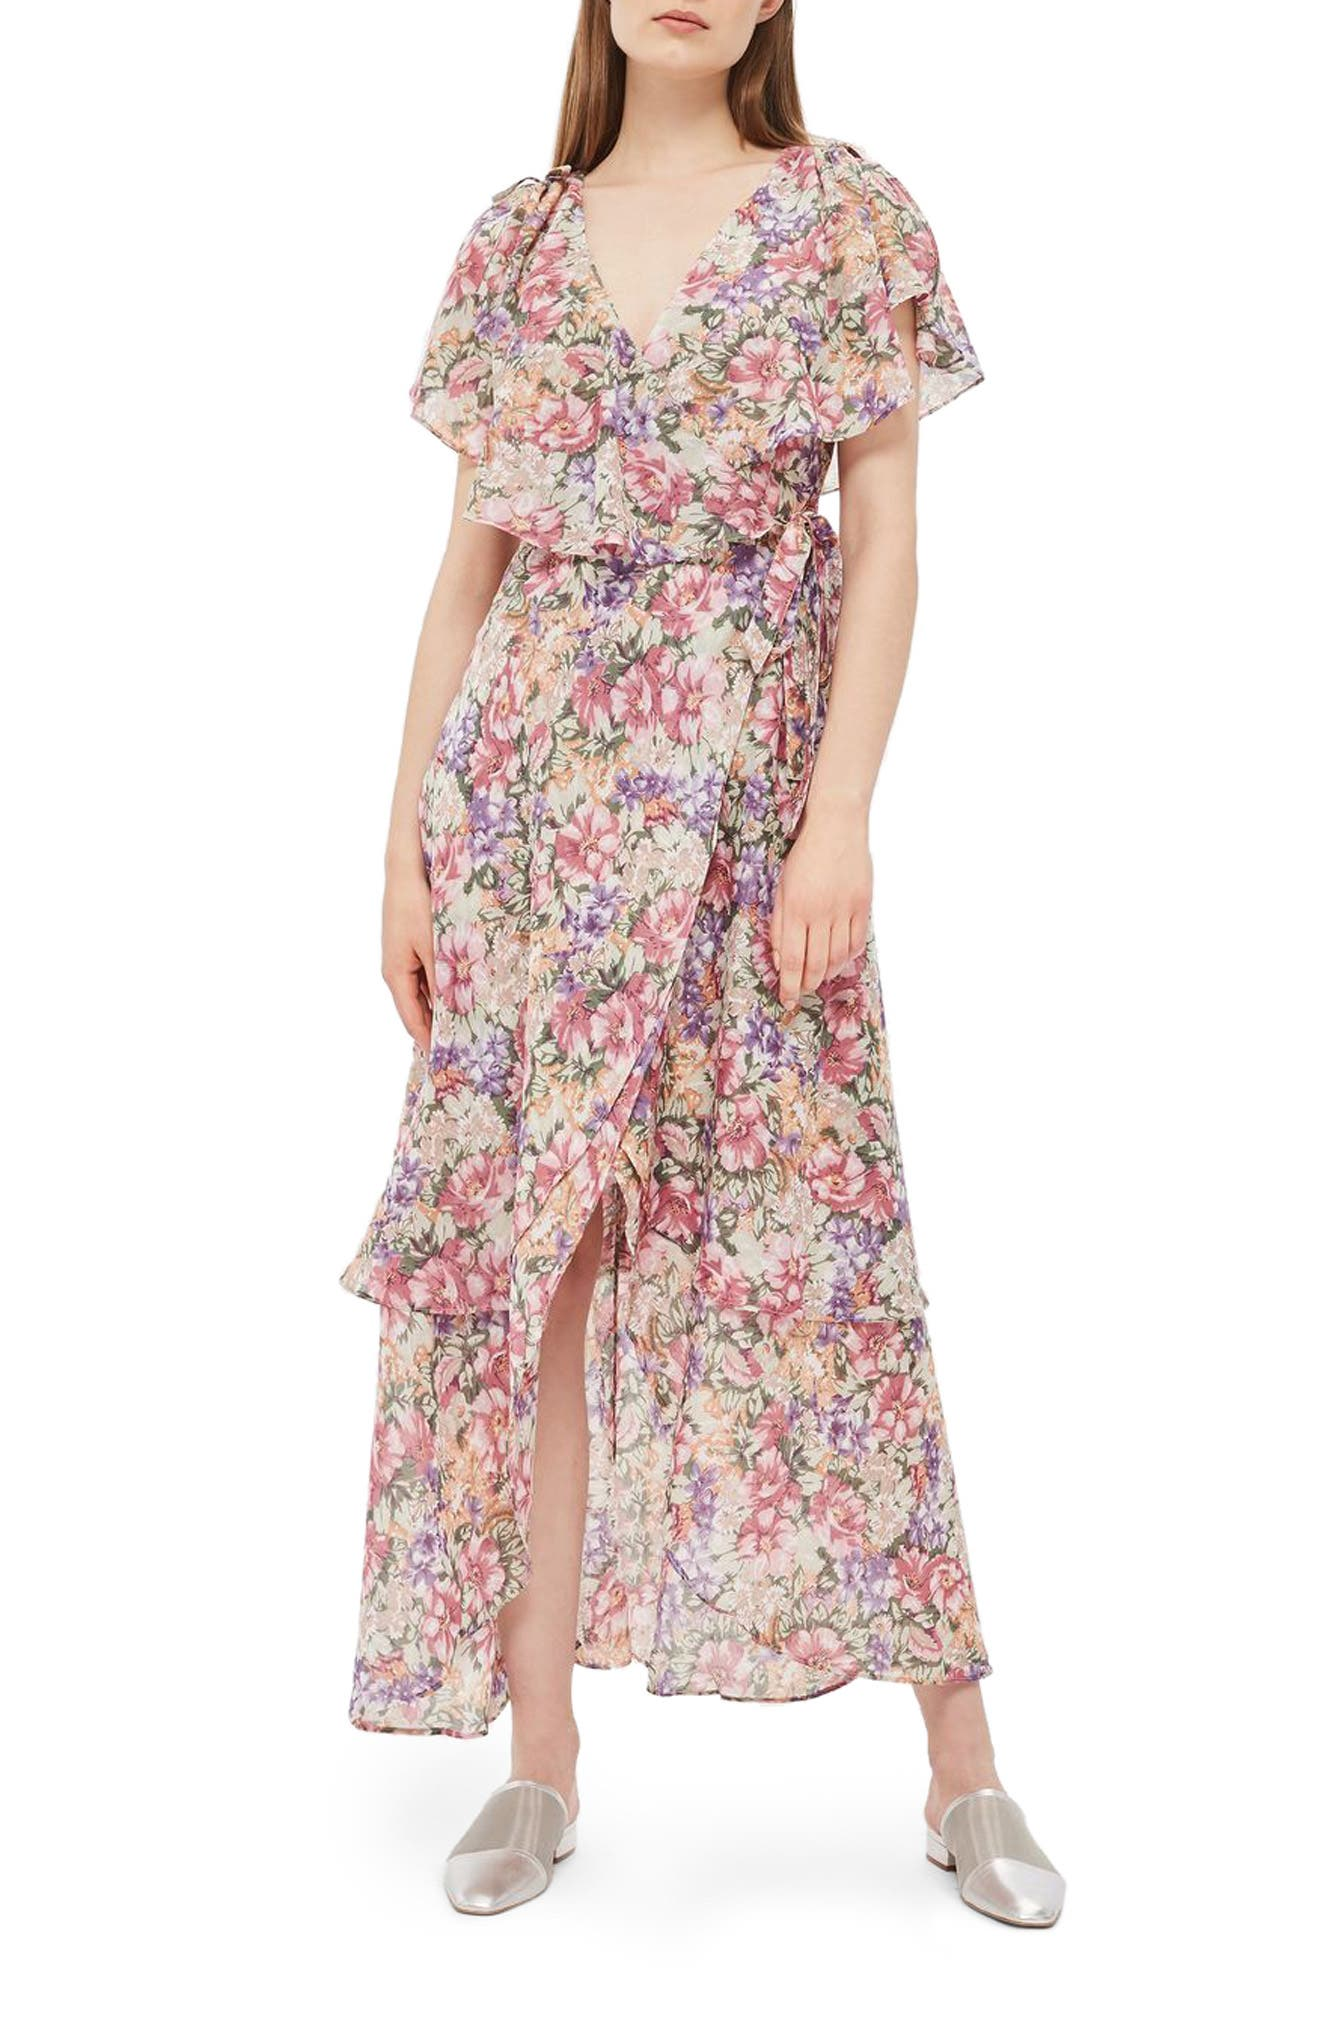 Topshop Floral Ruffle Wrap Maxi Dress